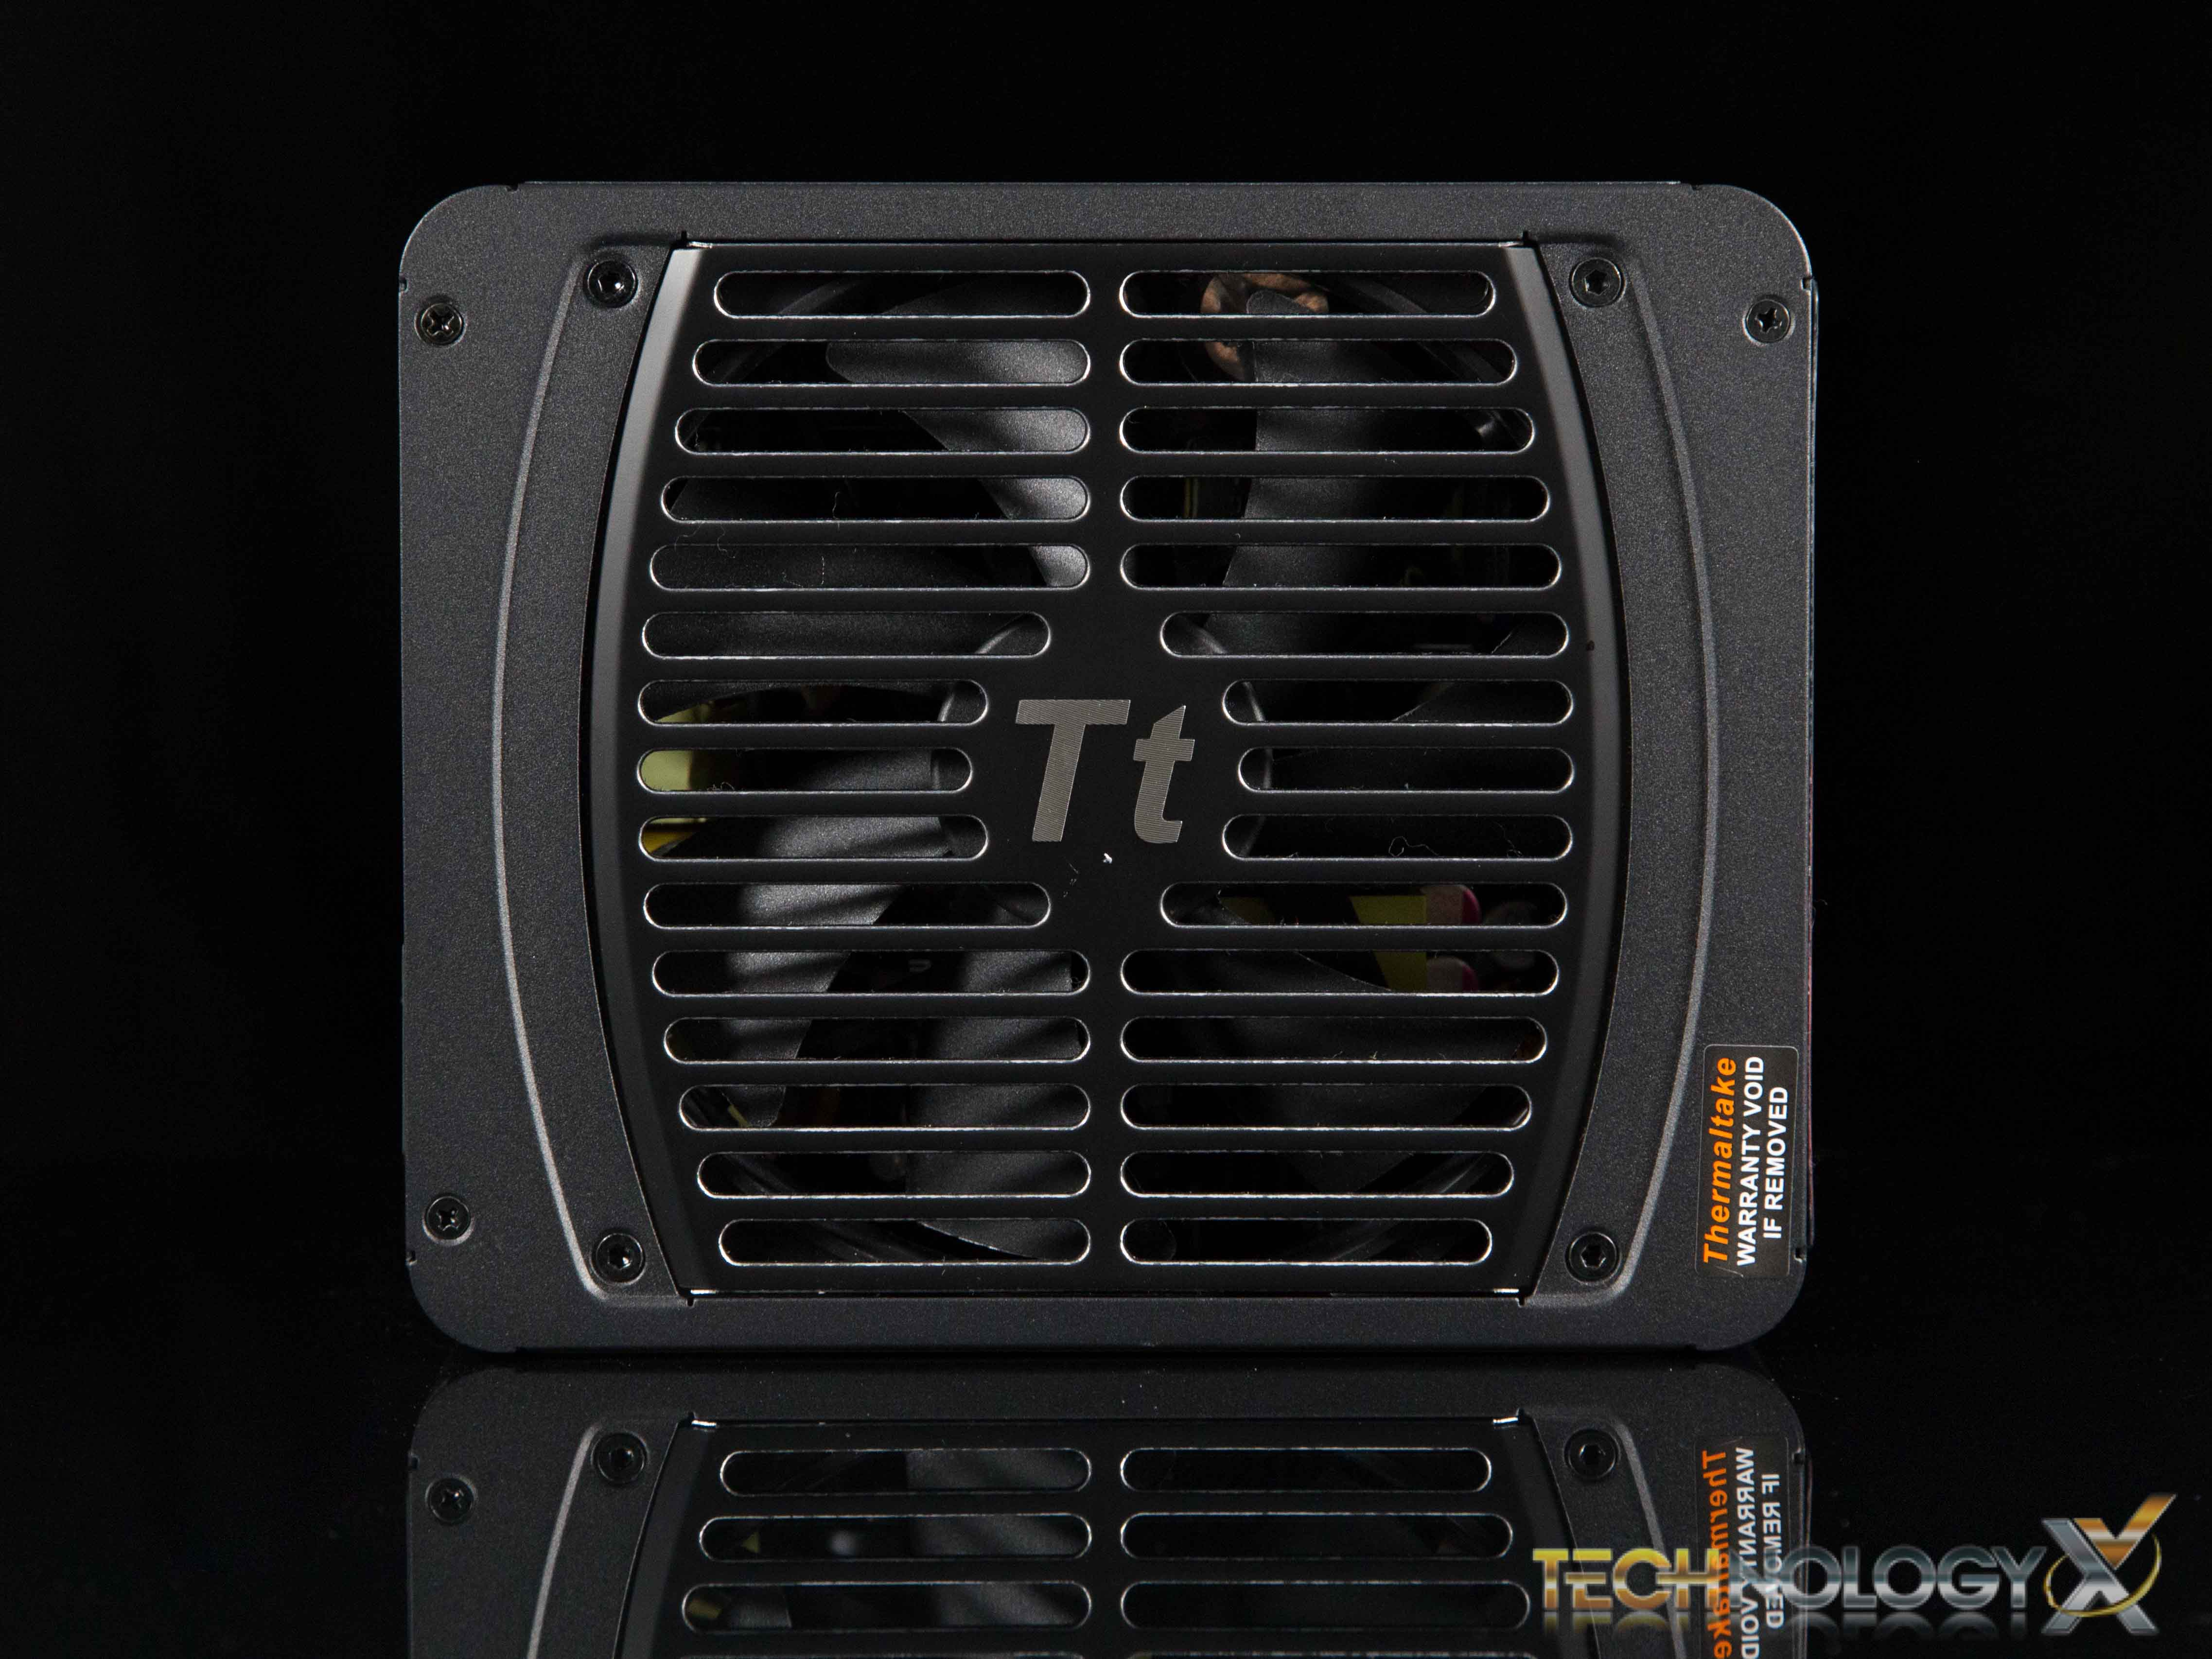 Supercharge Z170-15